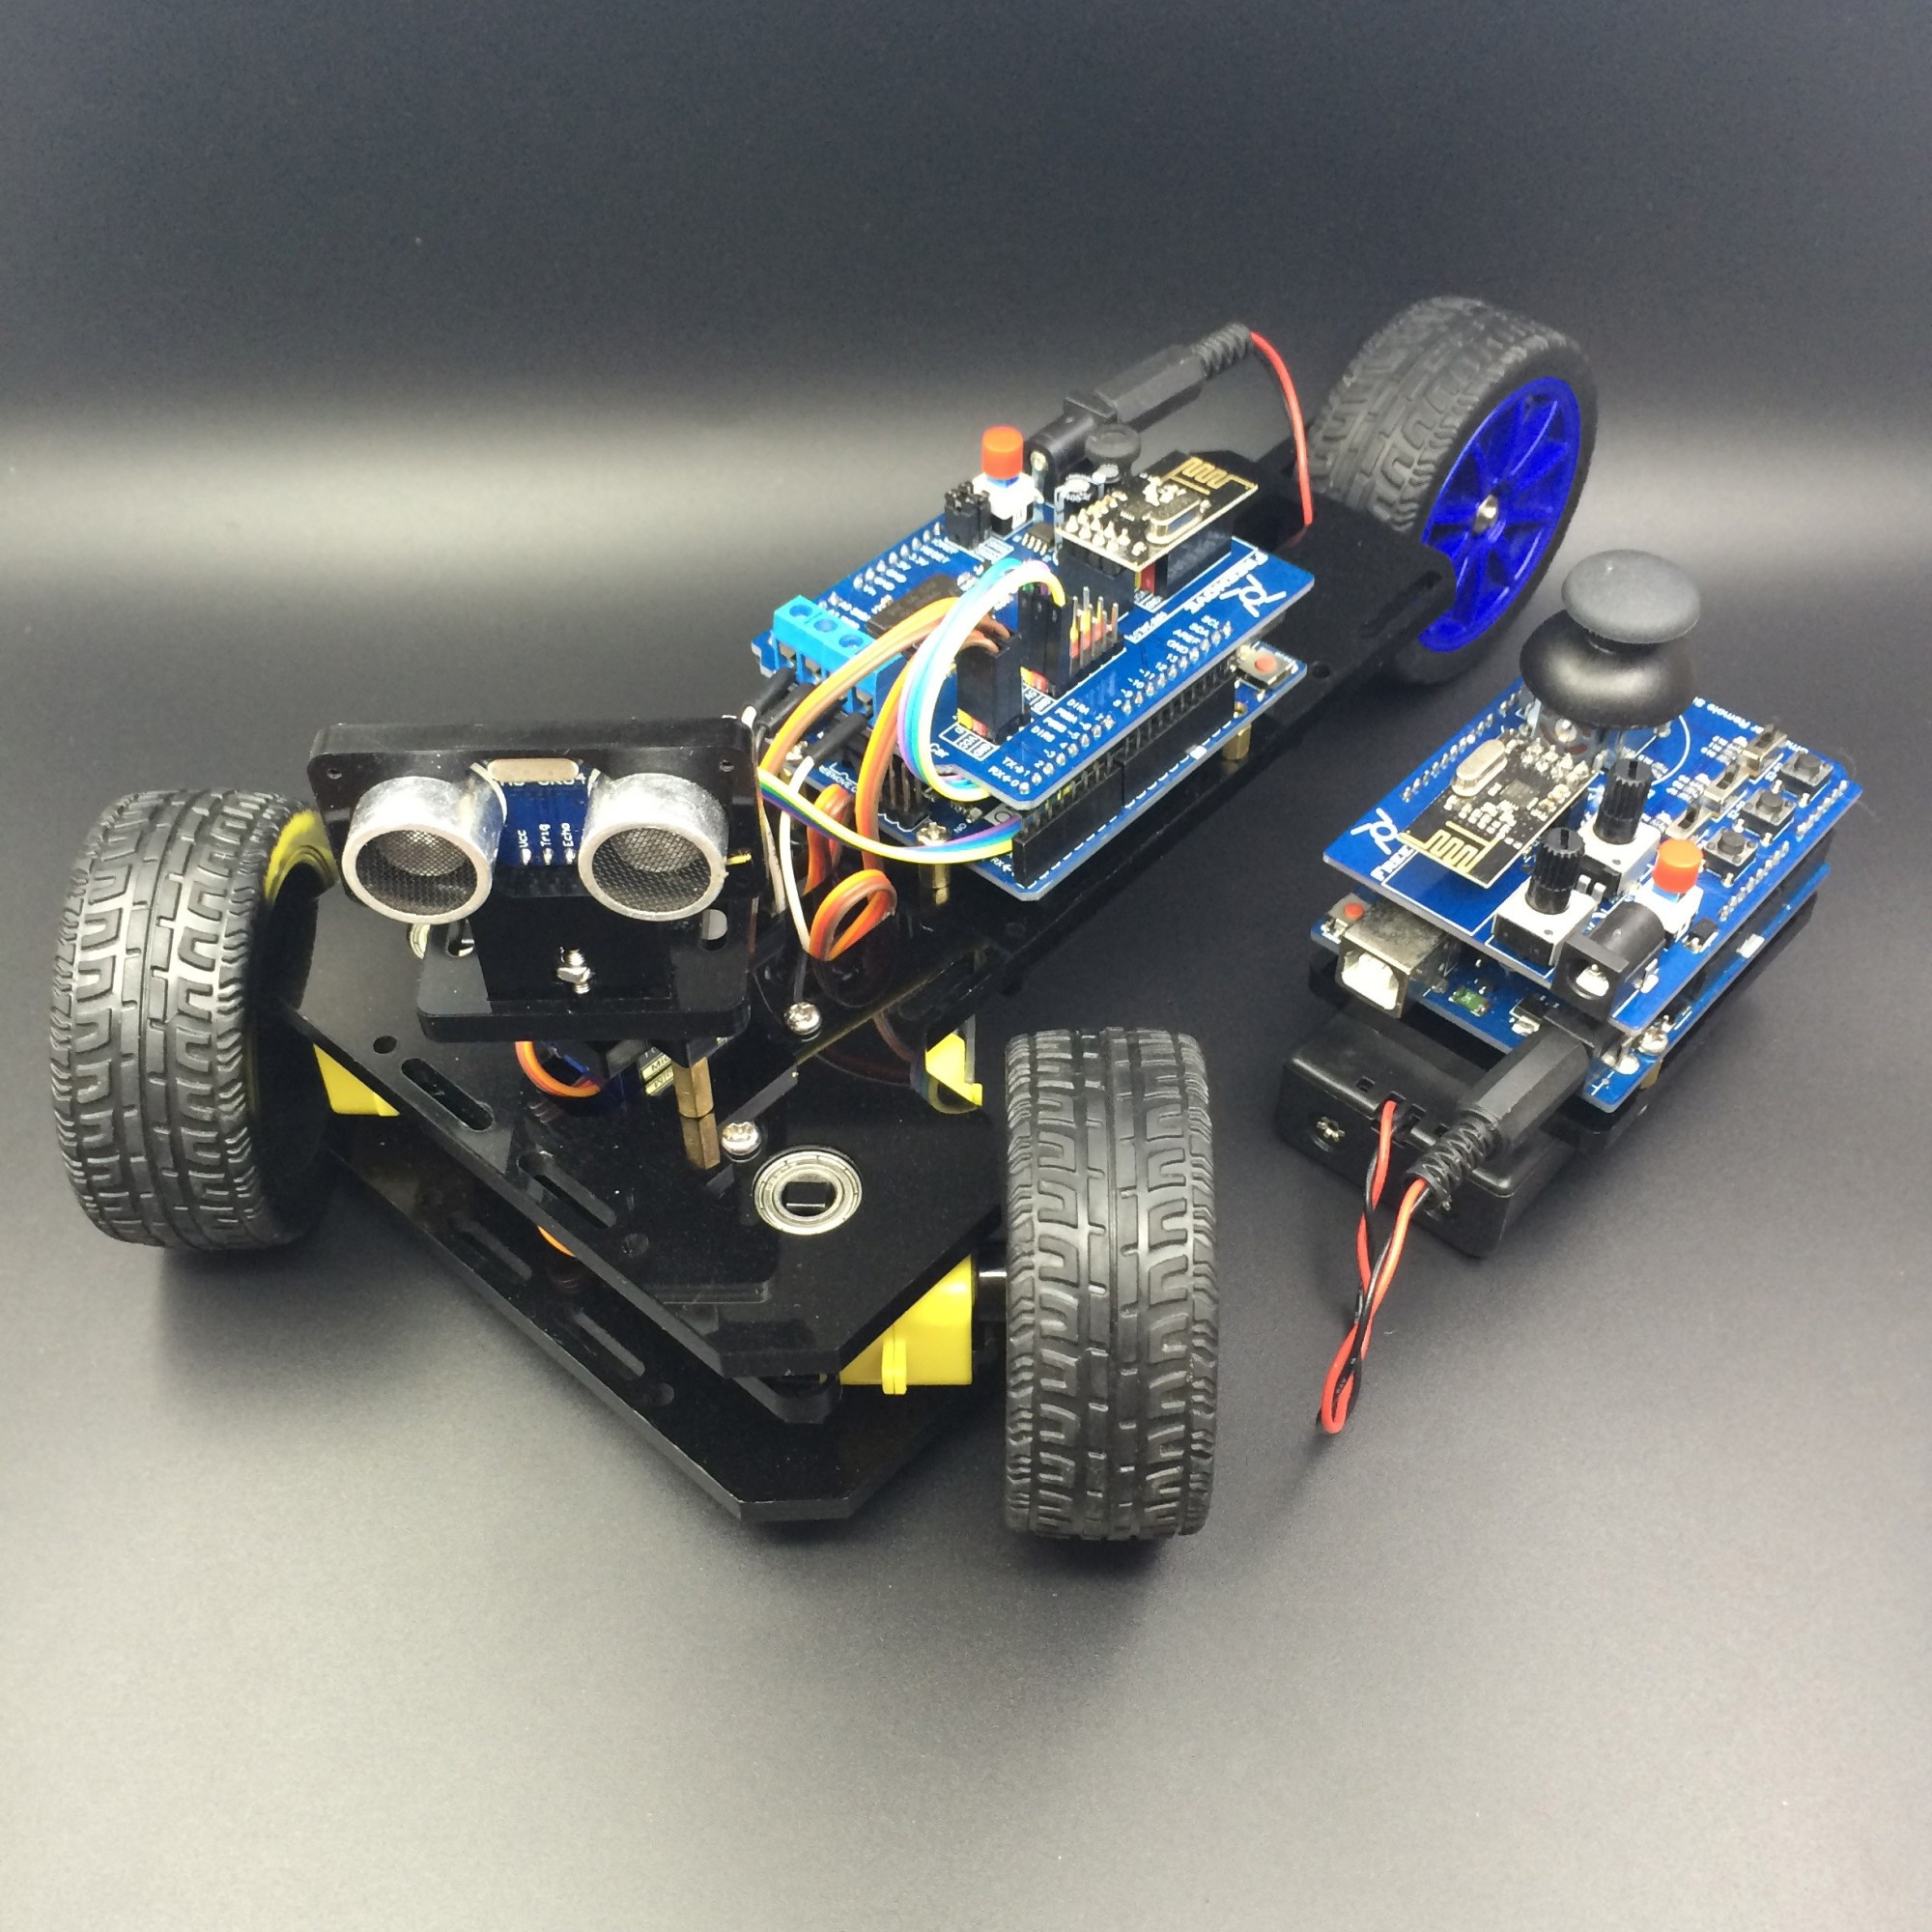 hight resolution of arduino controlled 3 wheeled car duinokit educational electronics learning kits